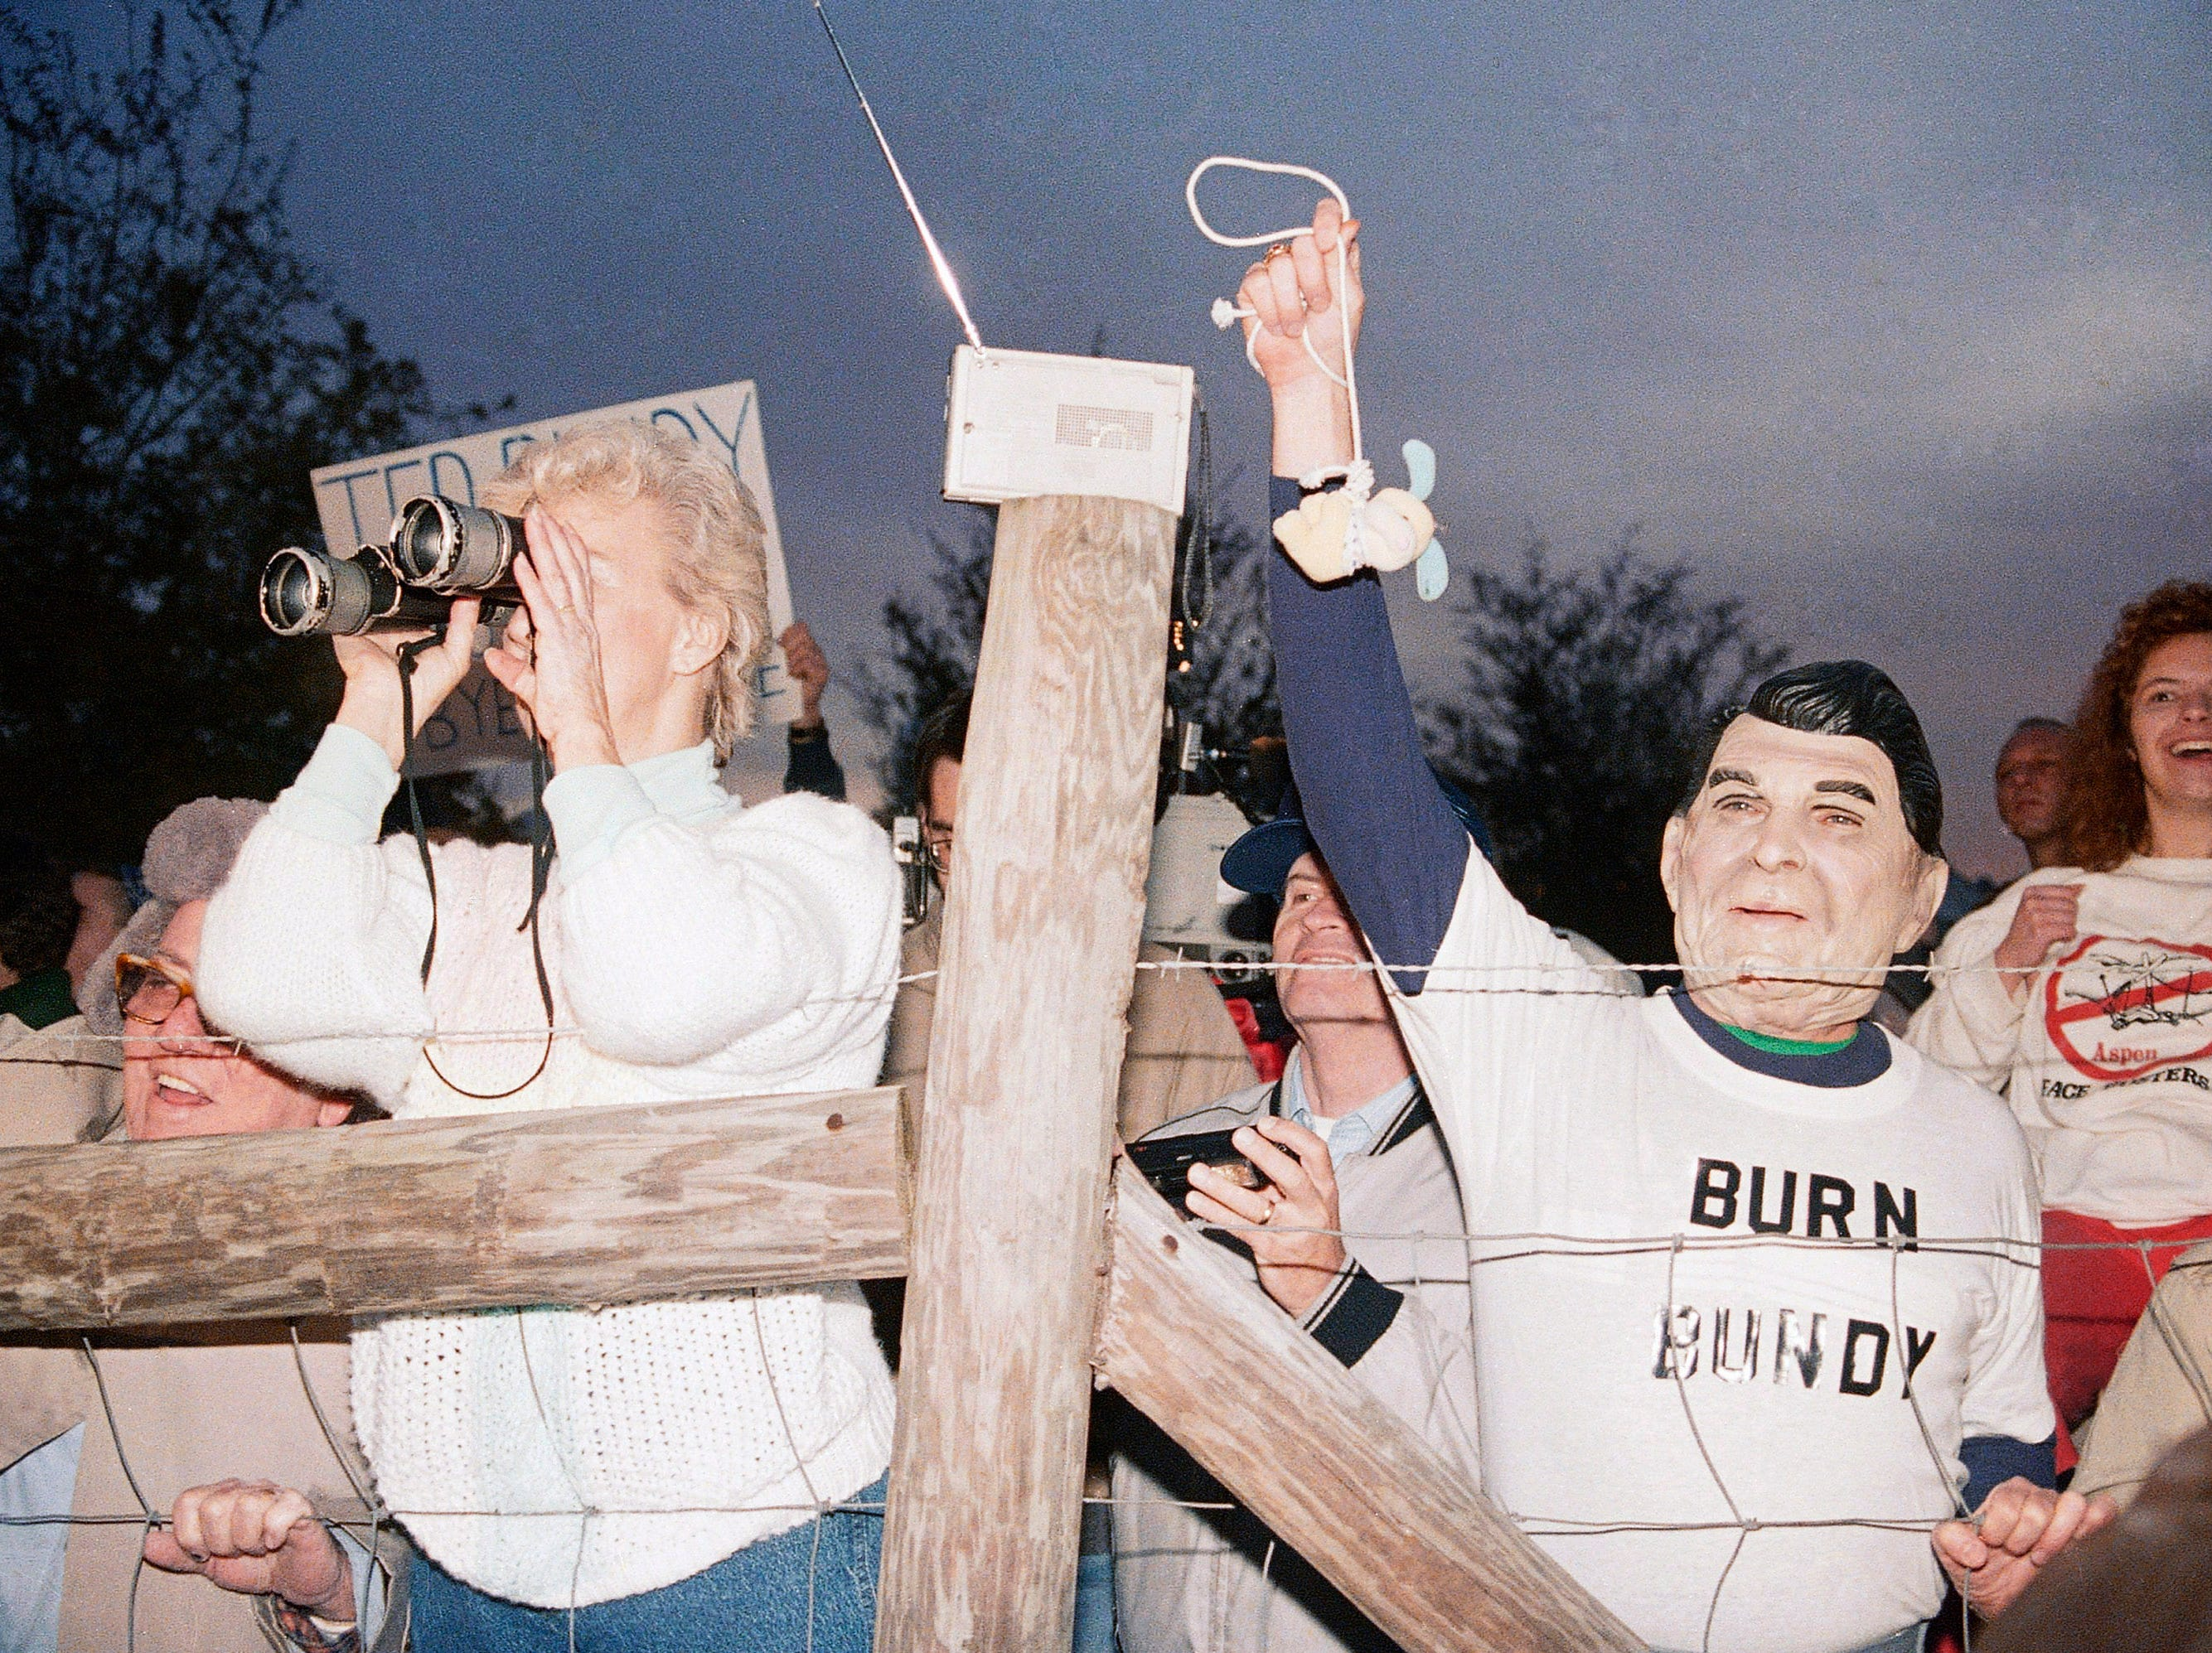 A toy bunny is hung in effigy by Jerry Jackson of Atlanta Ga., wearing a Ronald Reagan mask, and the pro-death penalty crowd rejoices after the Theodore Bundy execution, Jan. 24, 1989 at sunrise in Starke, Fla.